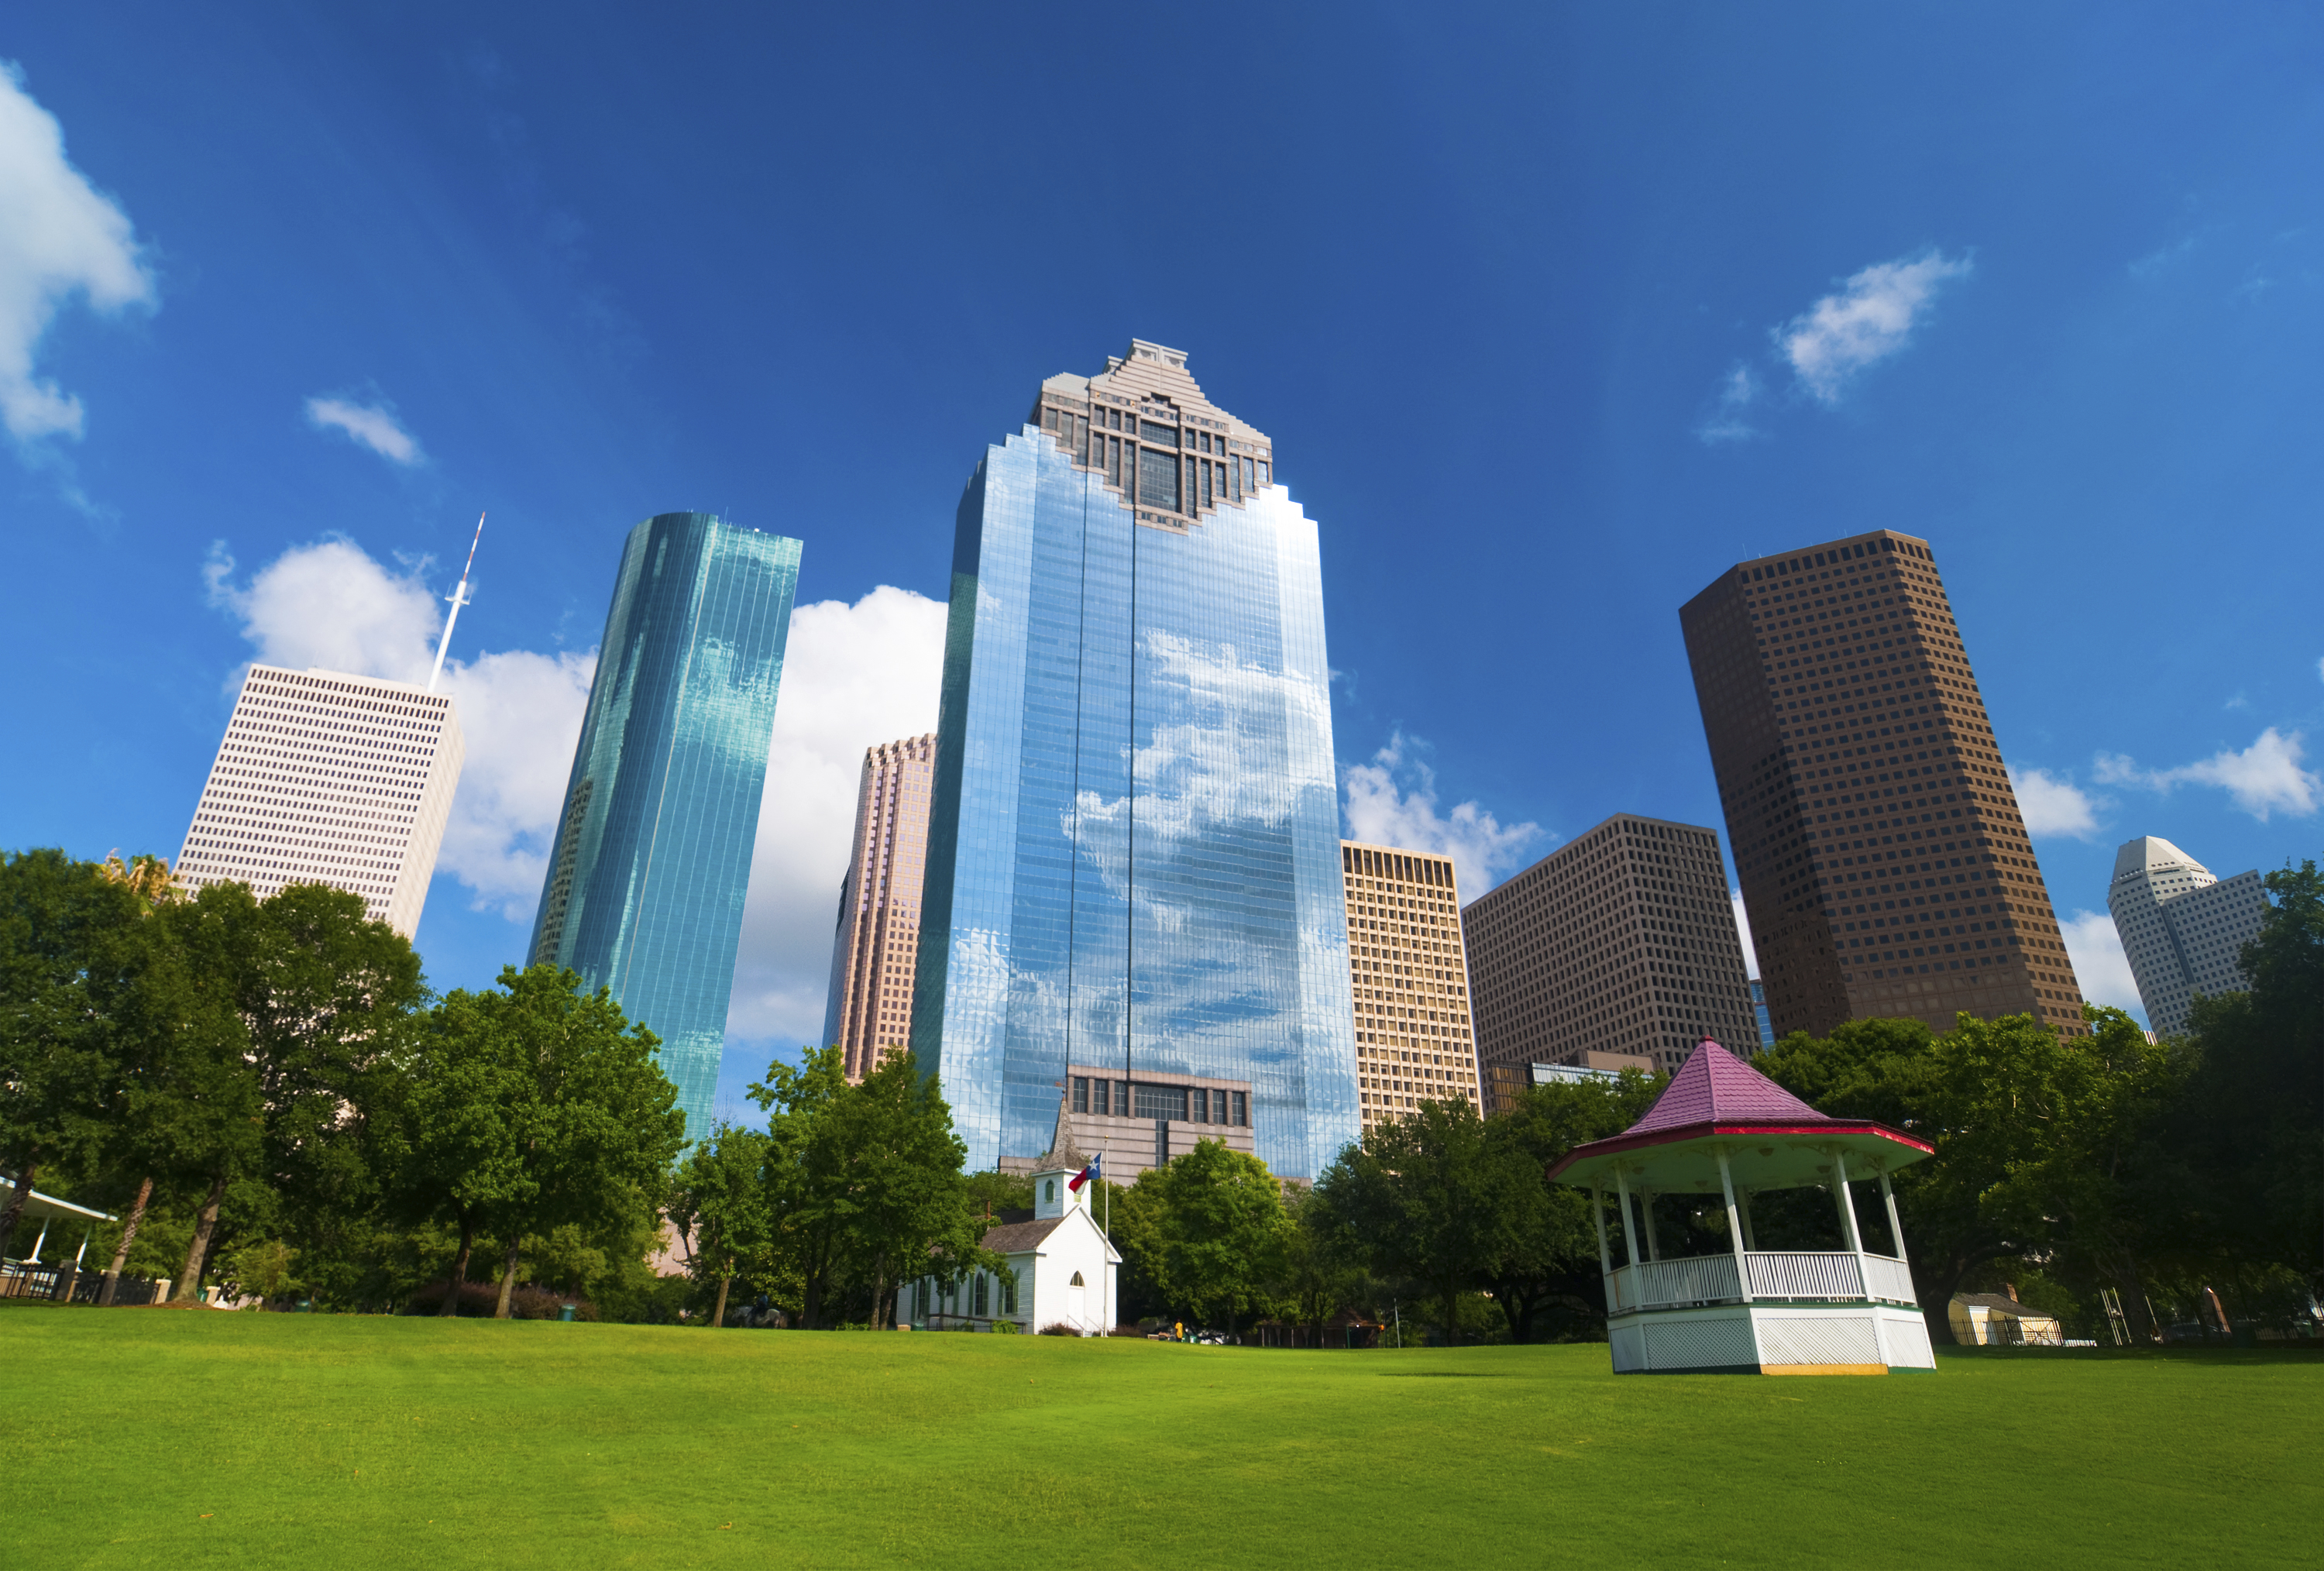 houston-q2-home-builder-real-estate-affordable-starts-closings